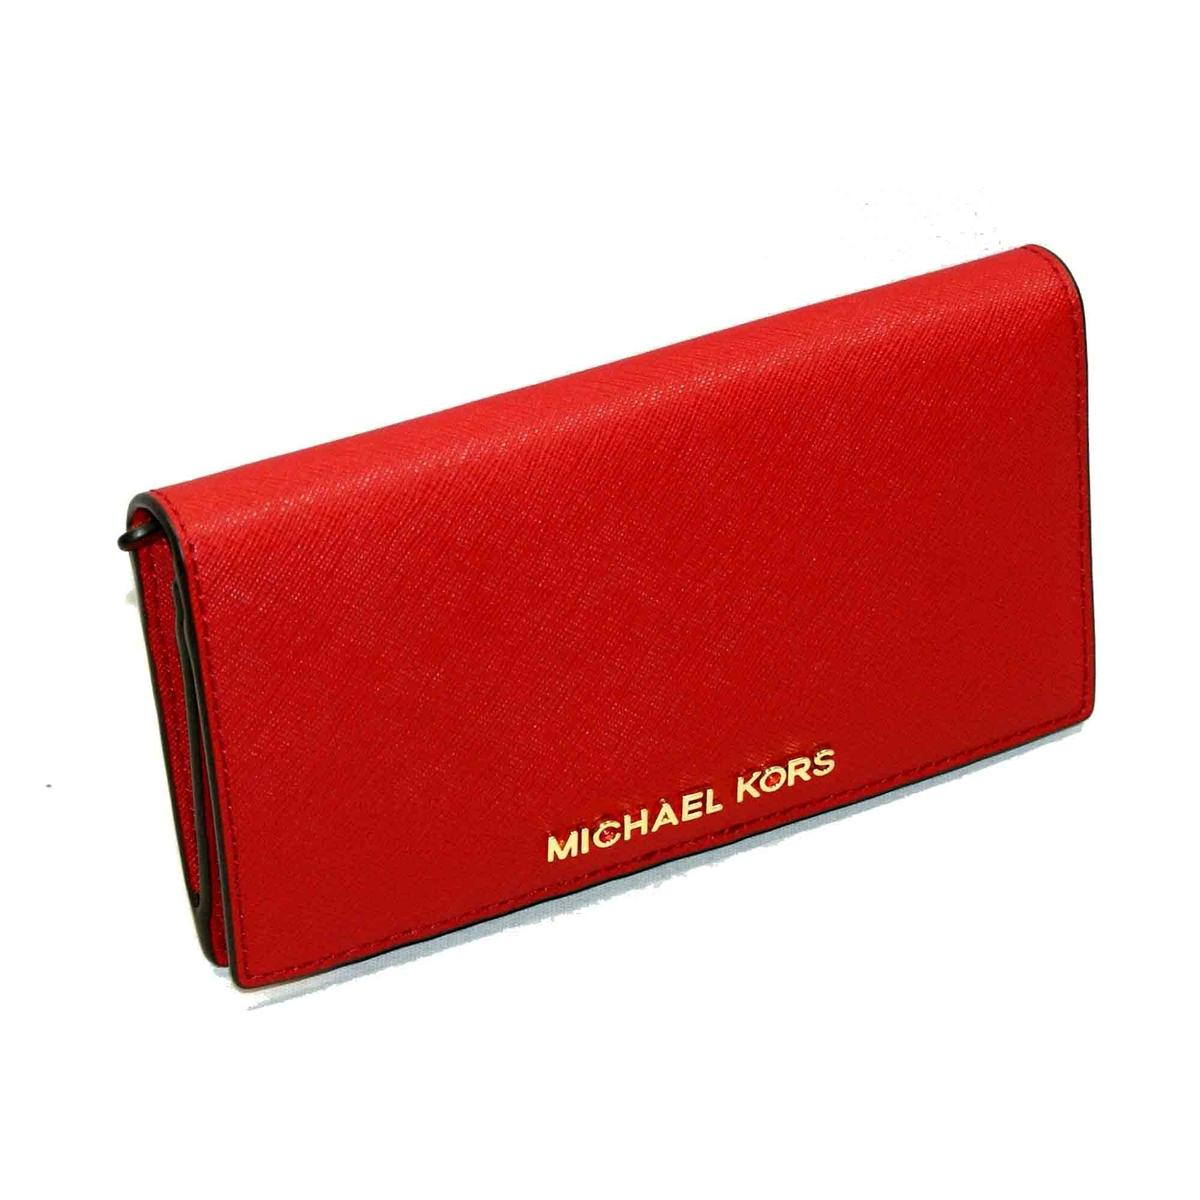 82b7f51f5a0e Home · Michael Kors · Jet Set Travel Leather Slim Wallet/ Clutch Red. CLICK  THUMBNAIL TO ZOOM. Found ...